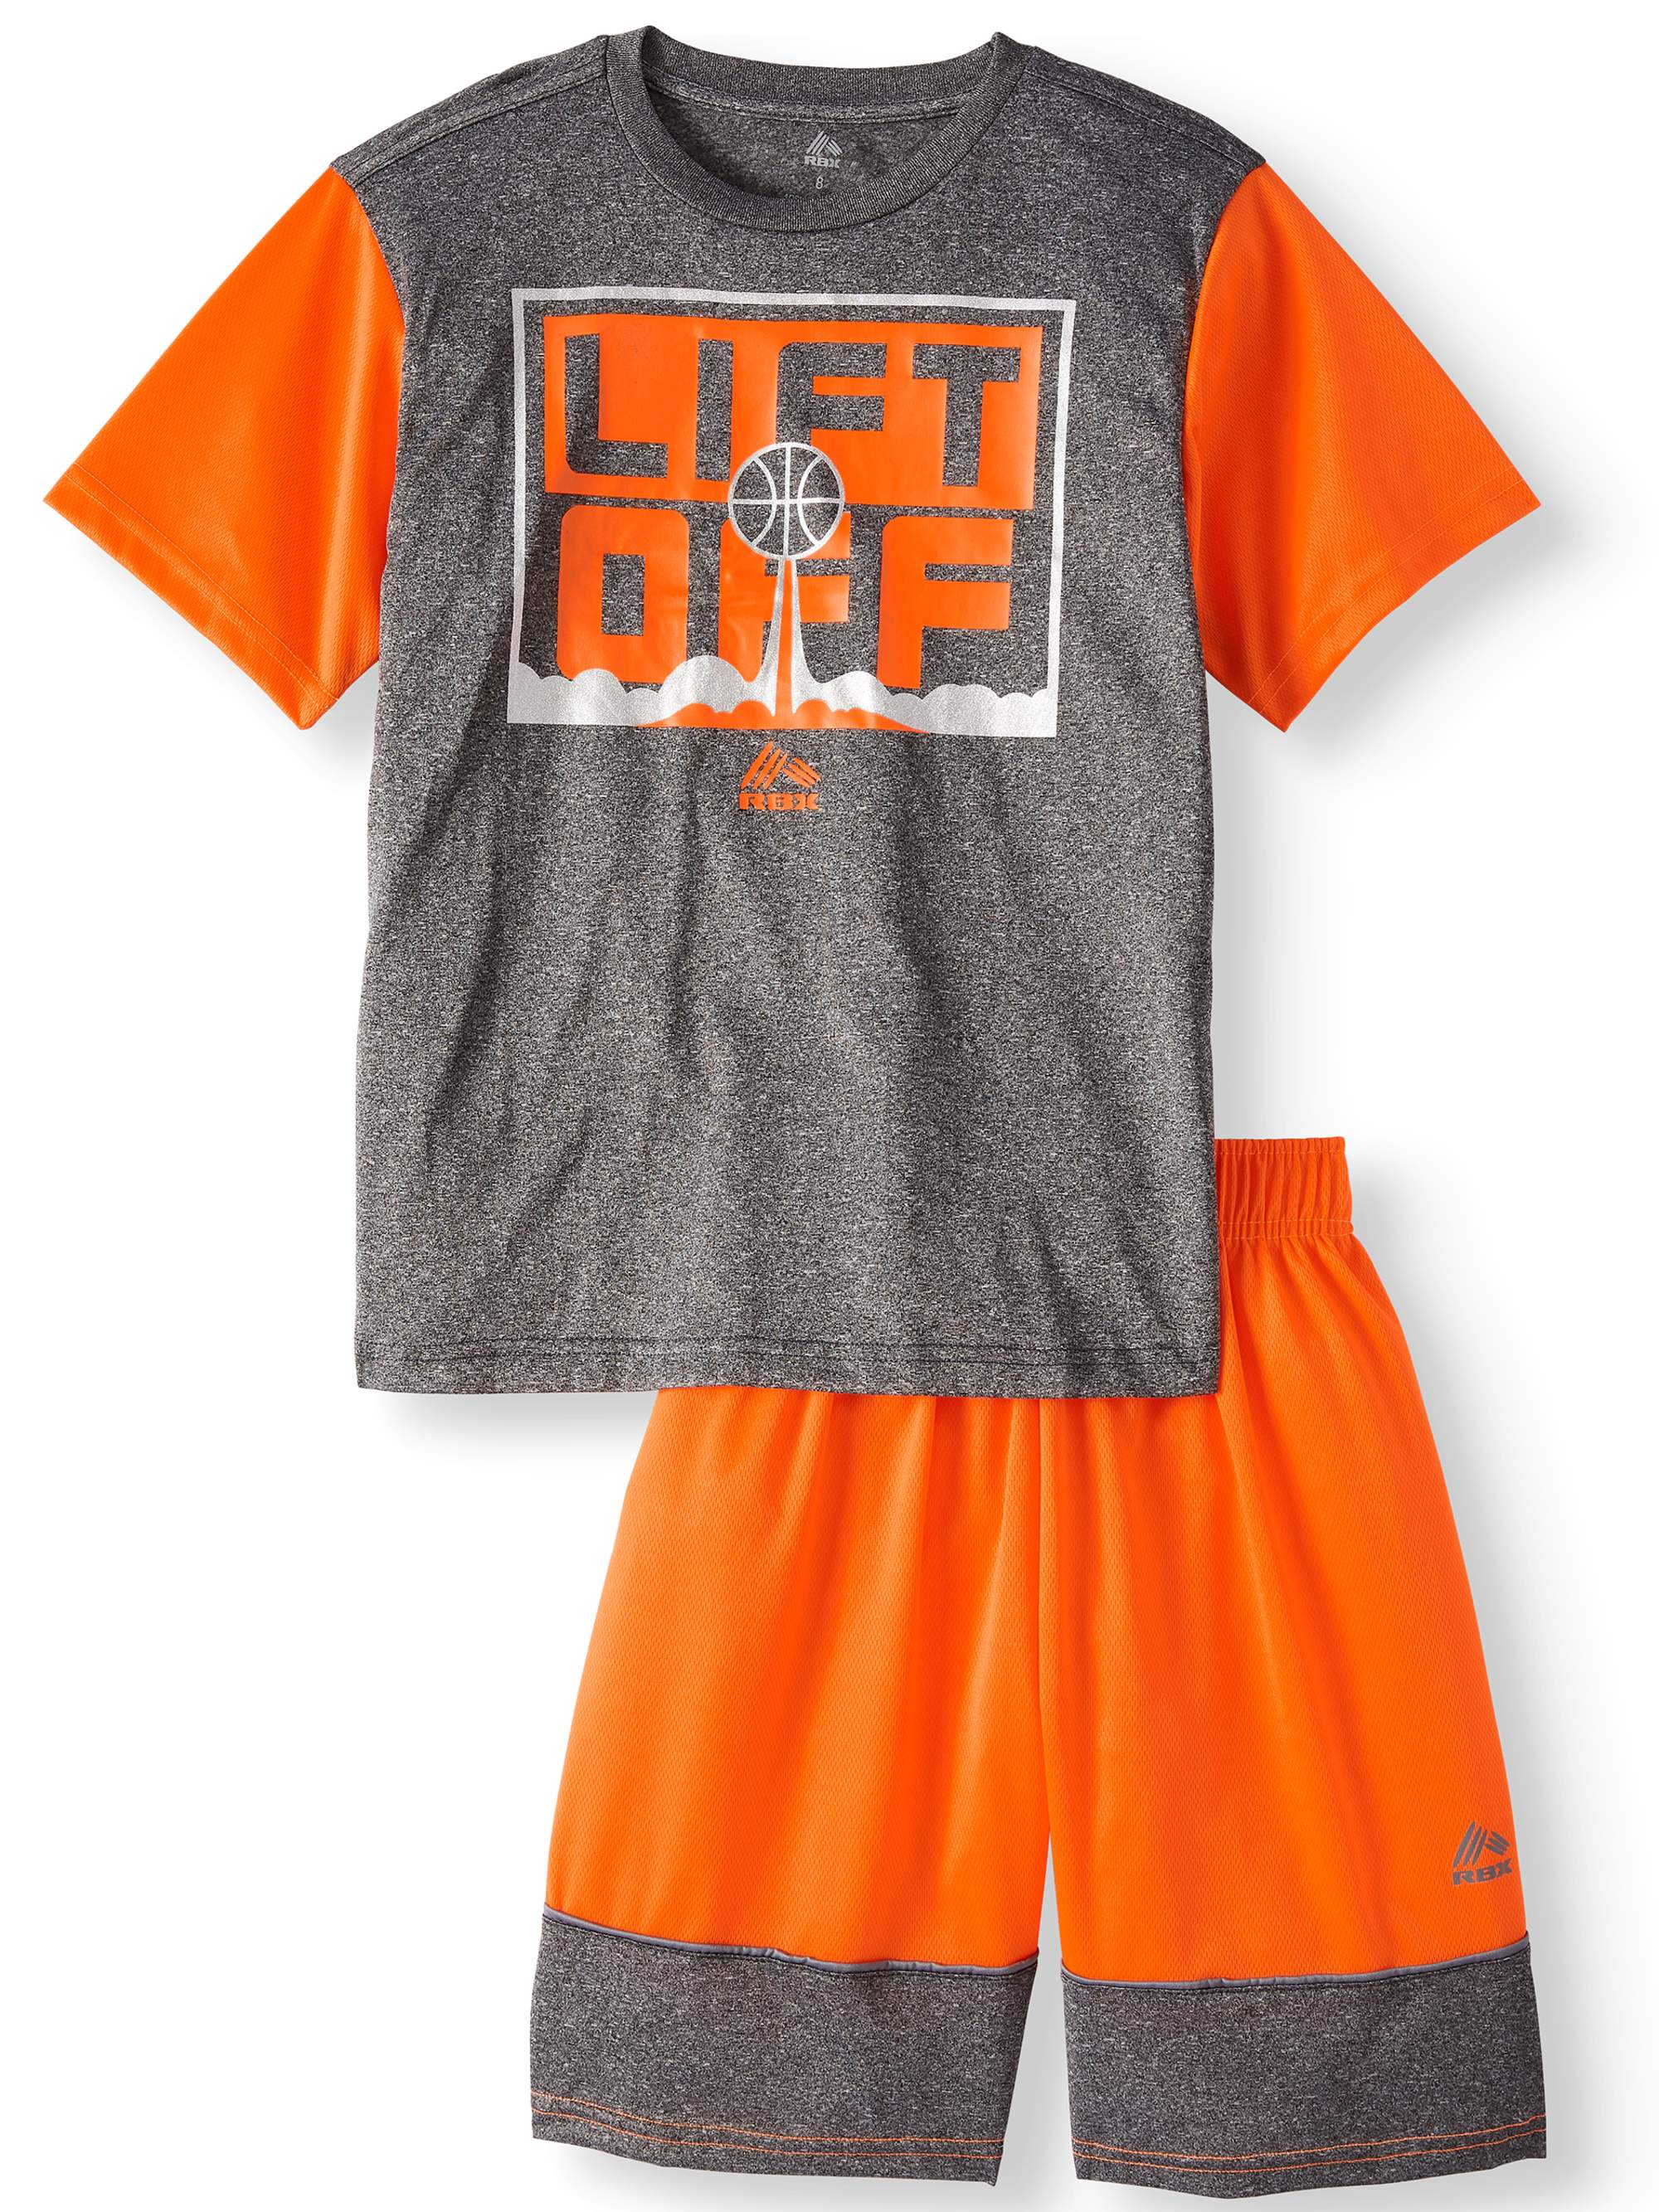 Graphic Tee and Mesh Shorts, 2-Piece Outfit Set (Big Boys)